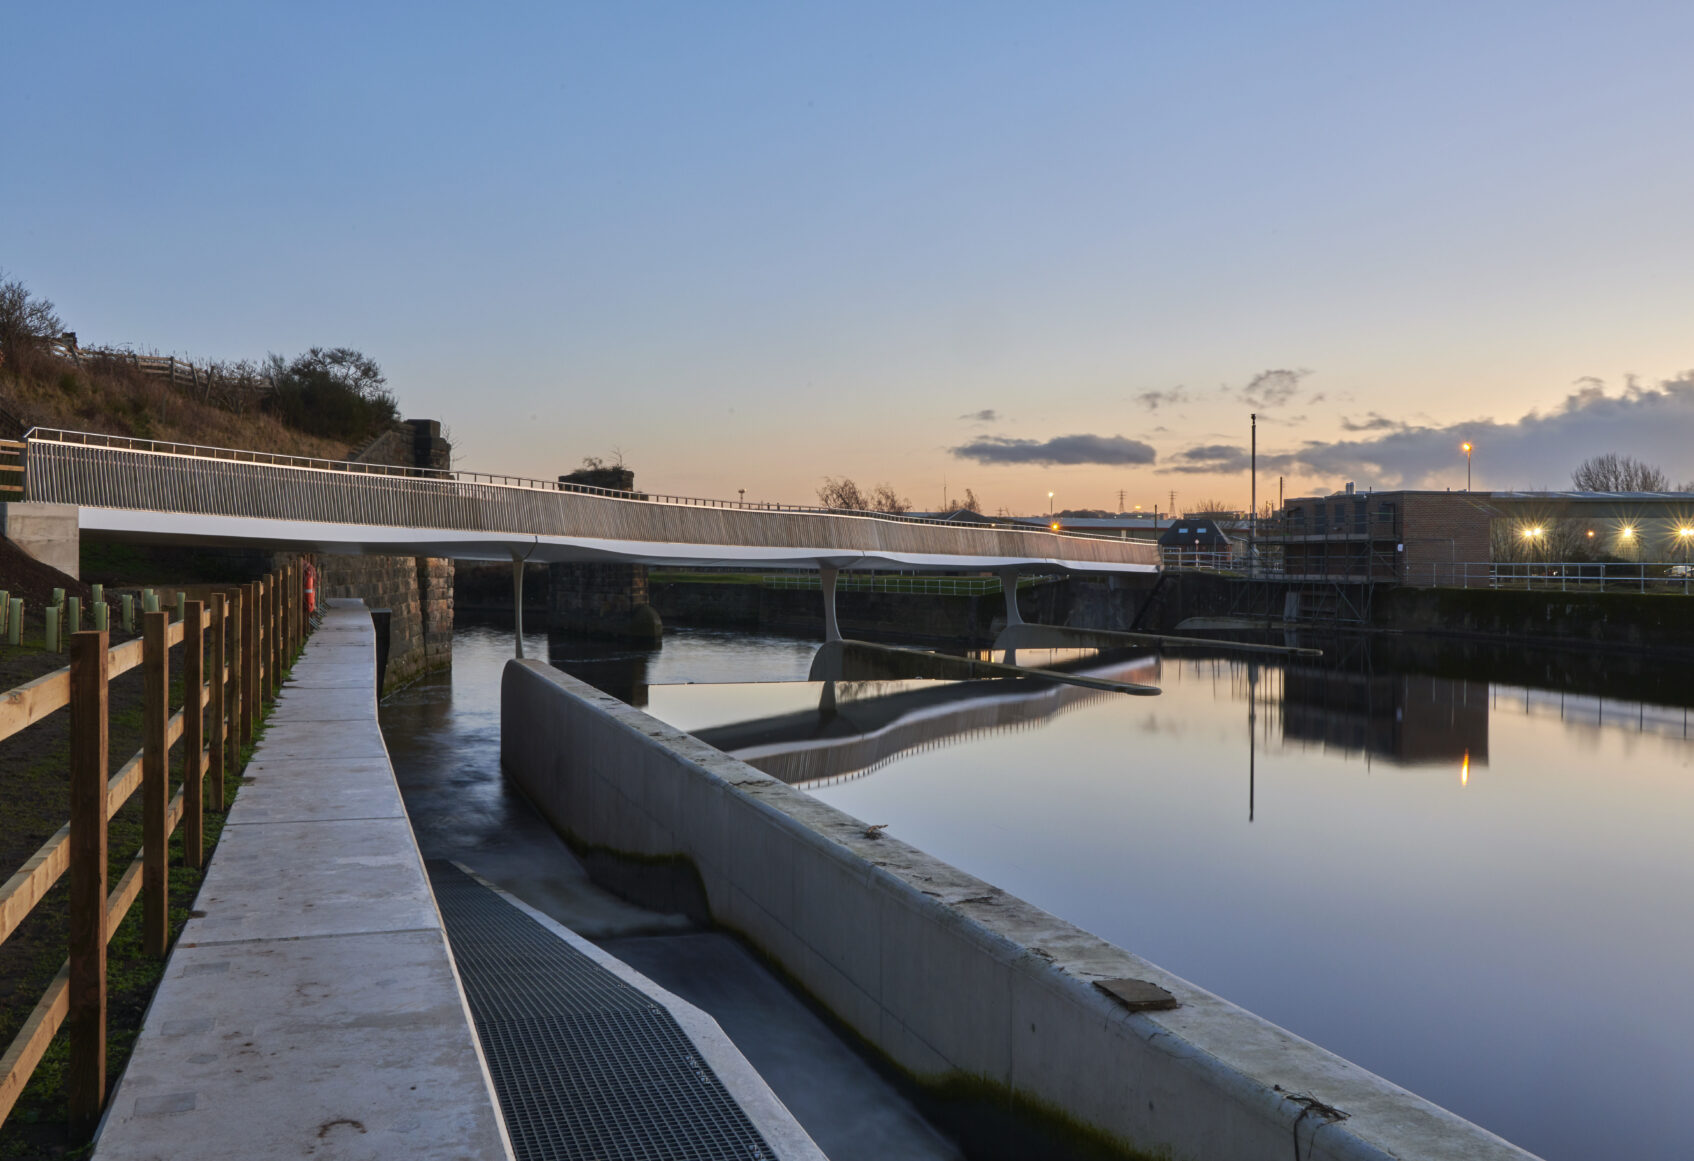 Foot and cycle bridge in Leeds crossing the River Aire, designed by Knight Architects